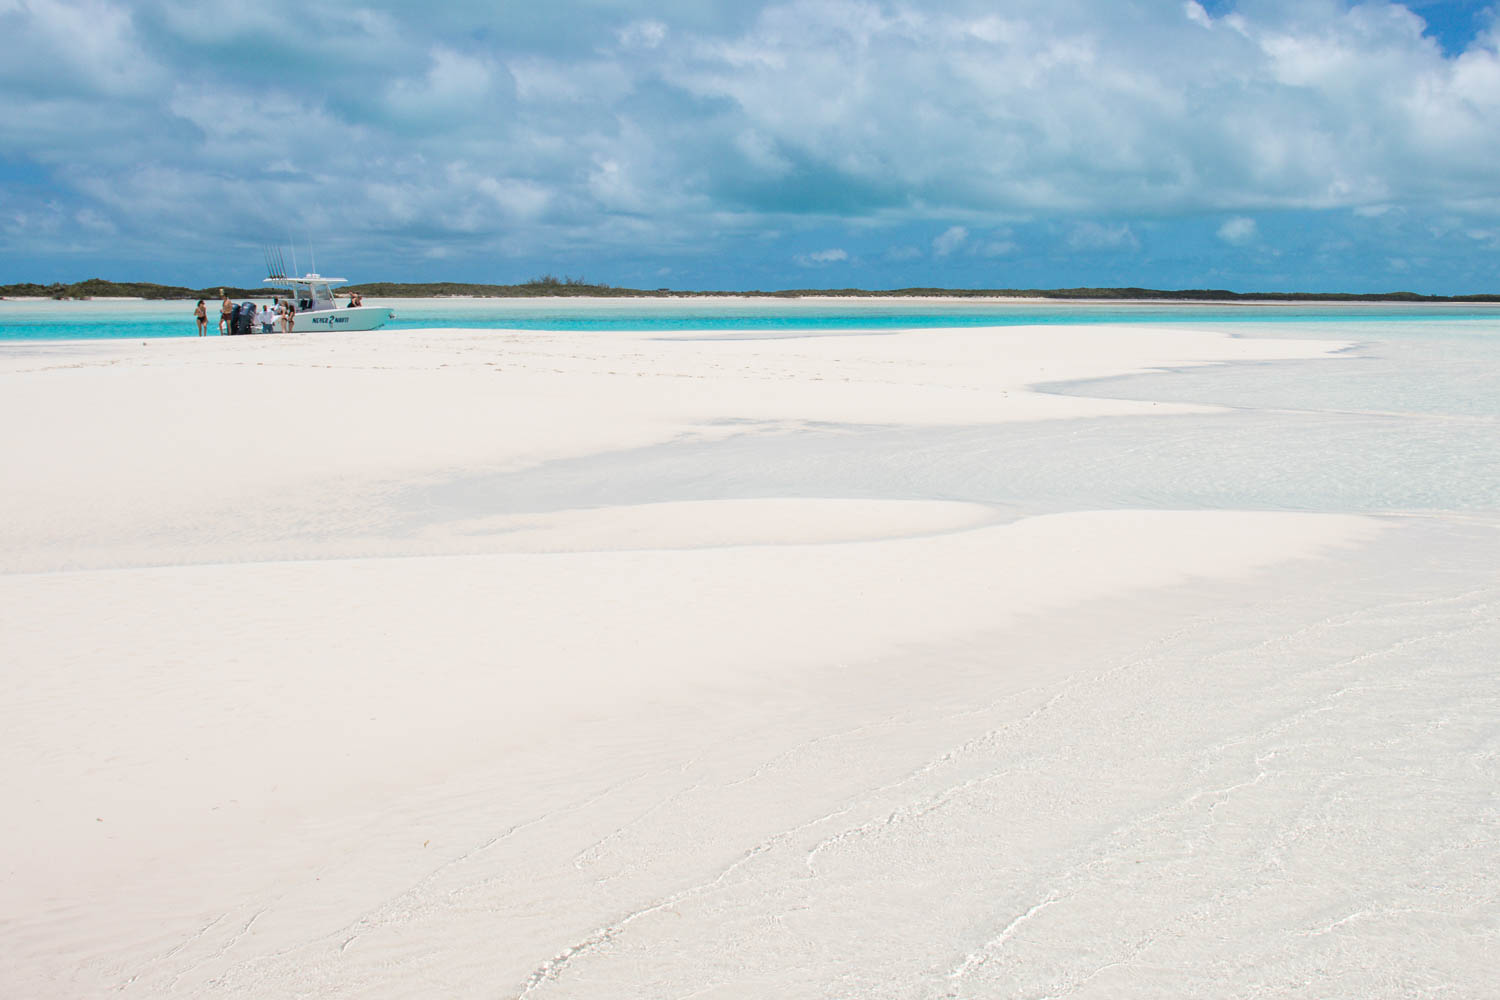 You can find serenity on Pig Island tours in the Exumas. The best excursions in Bahamas leave from Miami and Nassau.